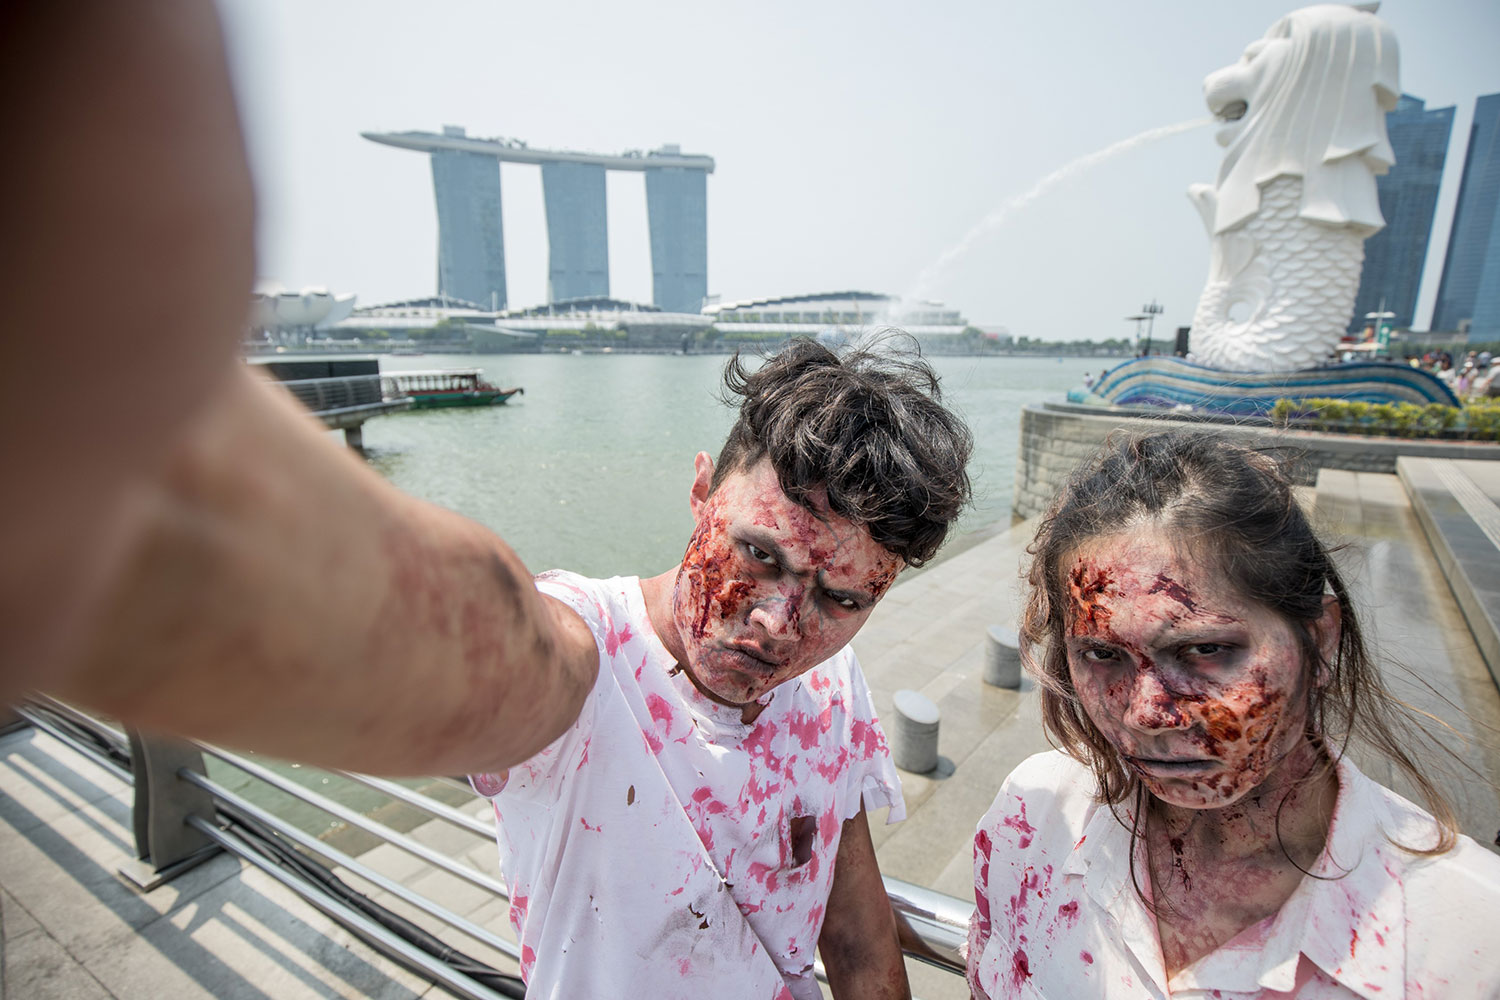 Zombies-taking-a-selfie-in-front-of-the-Merlion